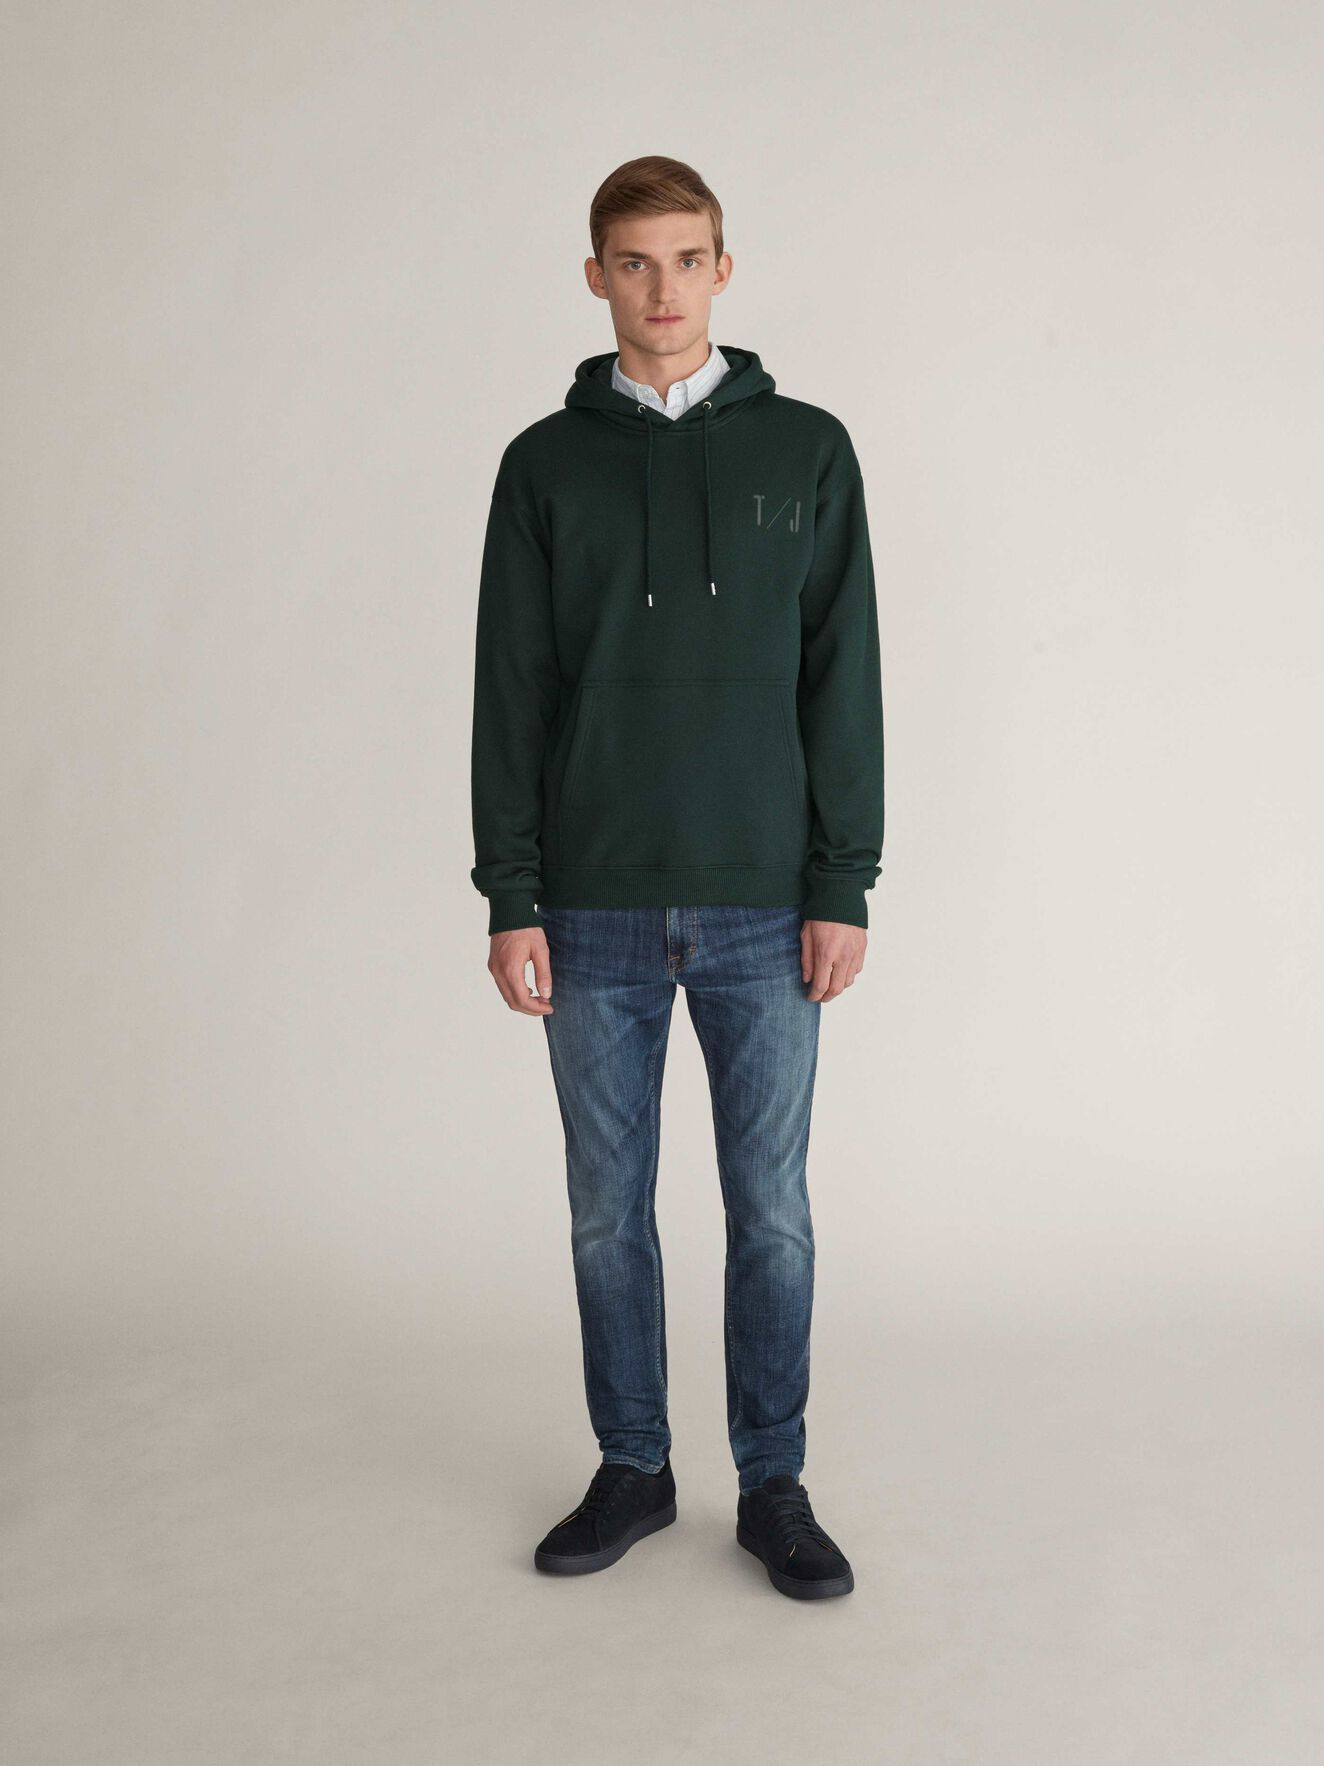 Plies Hoodie in Scarab Green from Tiger of Sweden